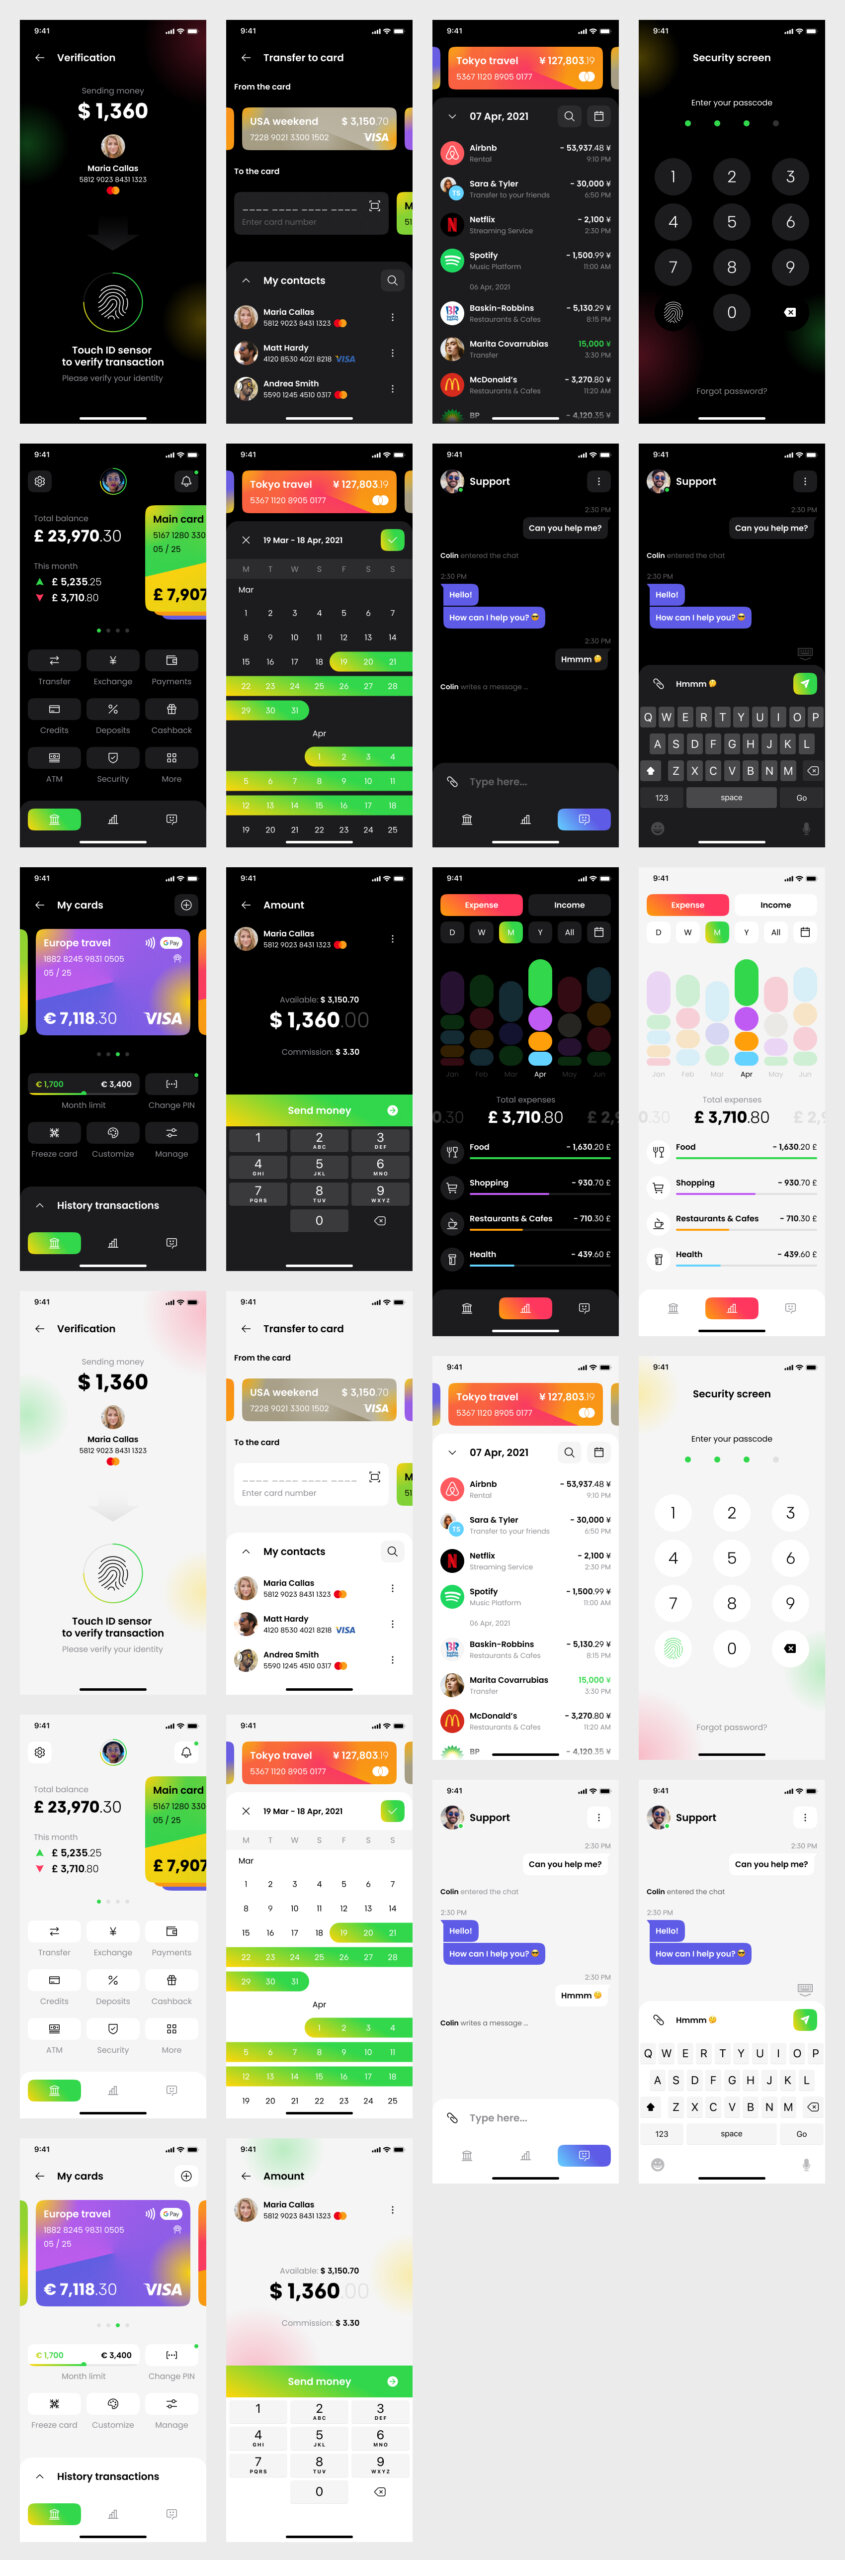 Banking App Free UI Kit for Figma from UIGarage